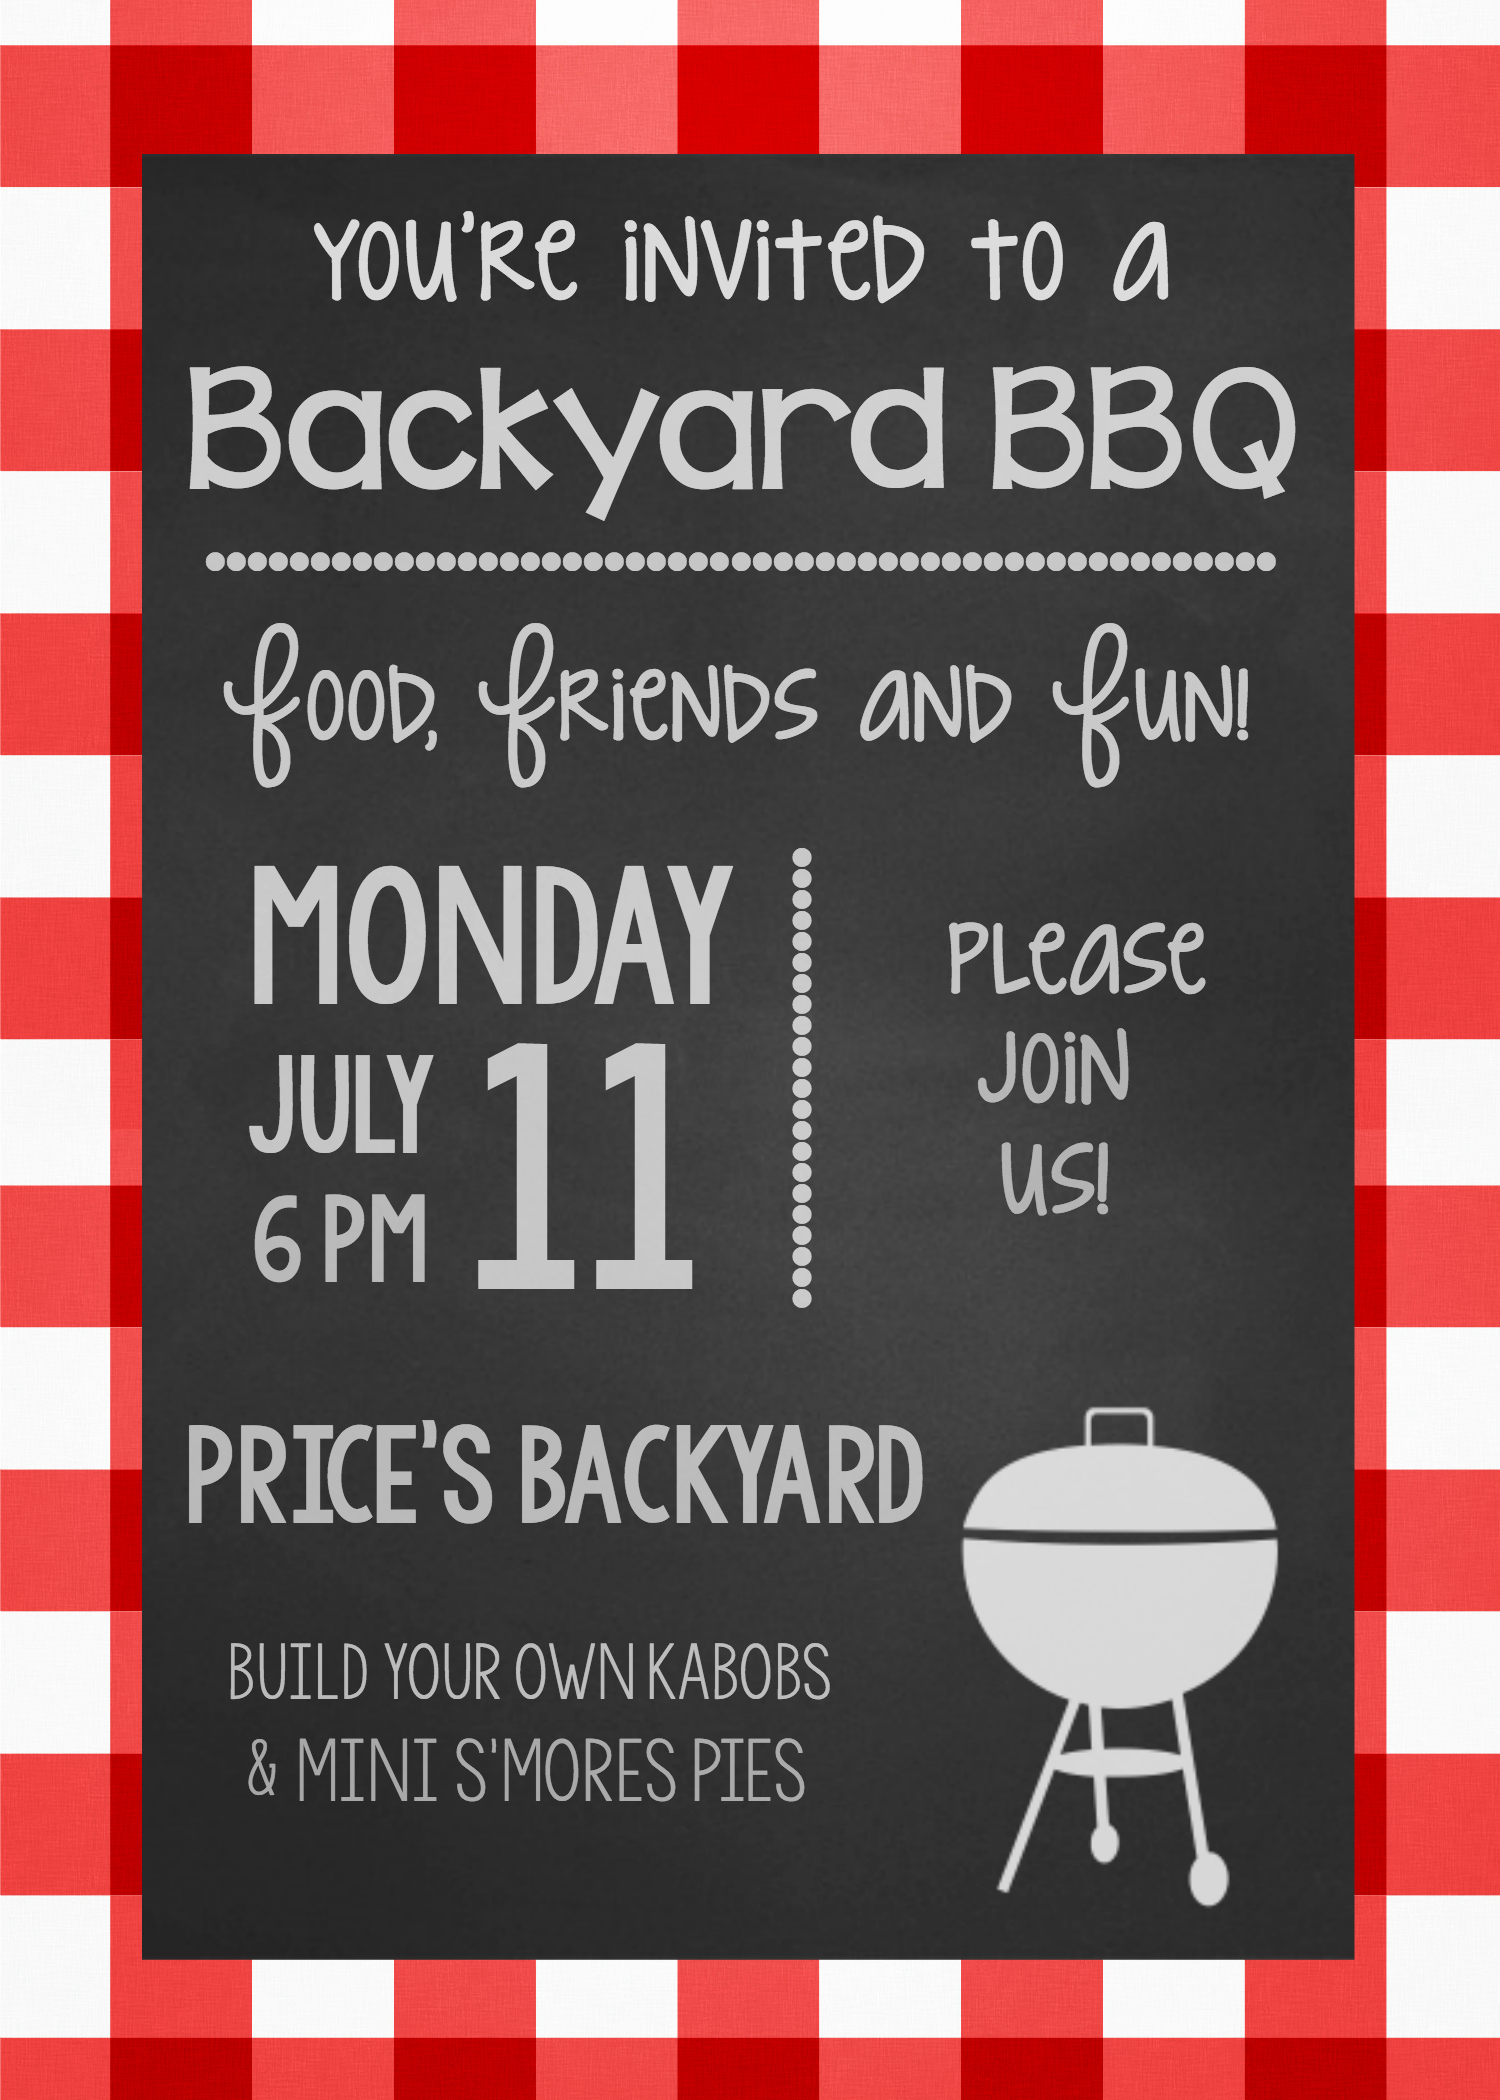 Barbecue Invitation Free Template Inspirational Summer Bbq Party Invitations & Printables – Fun Squared